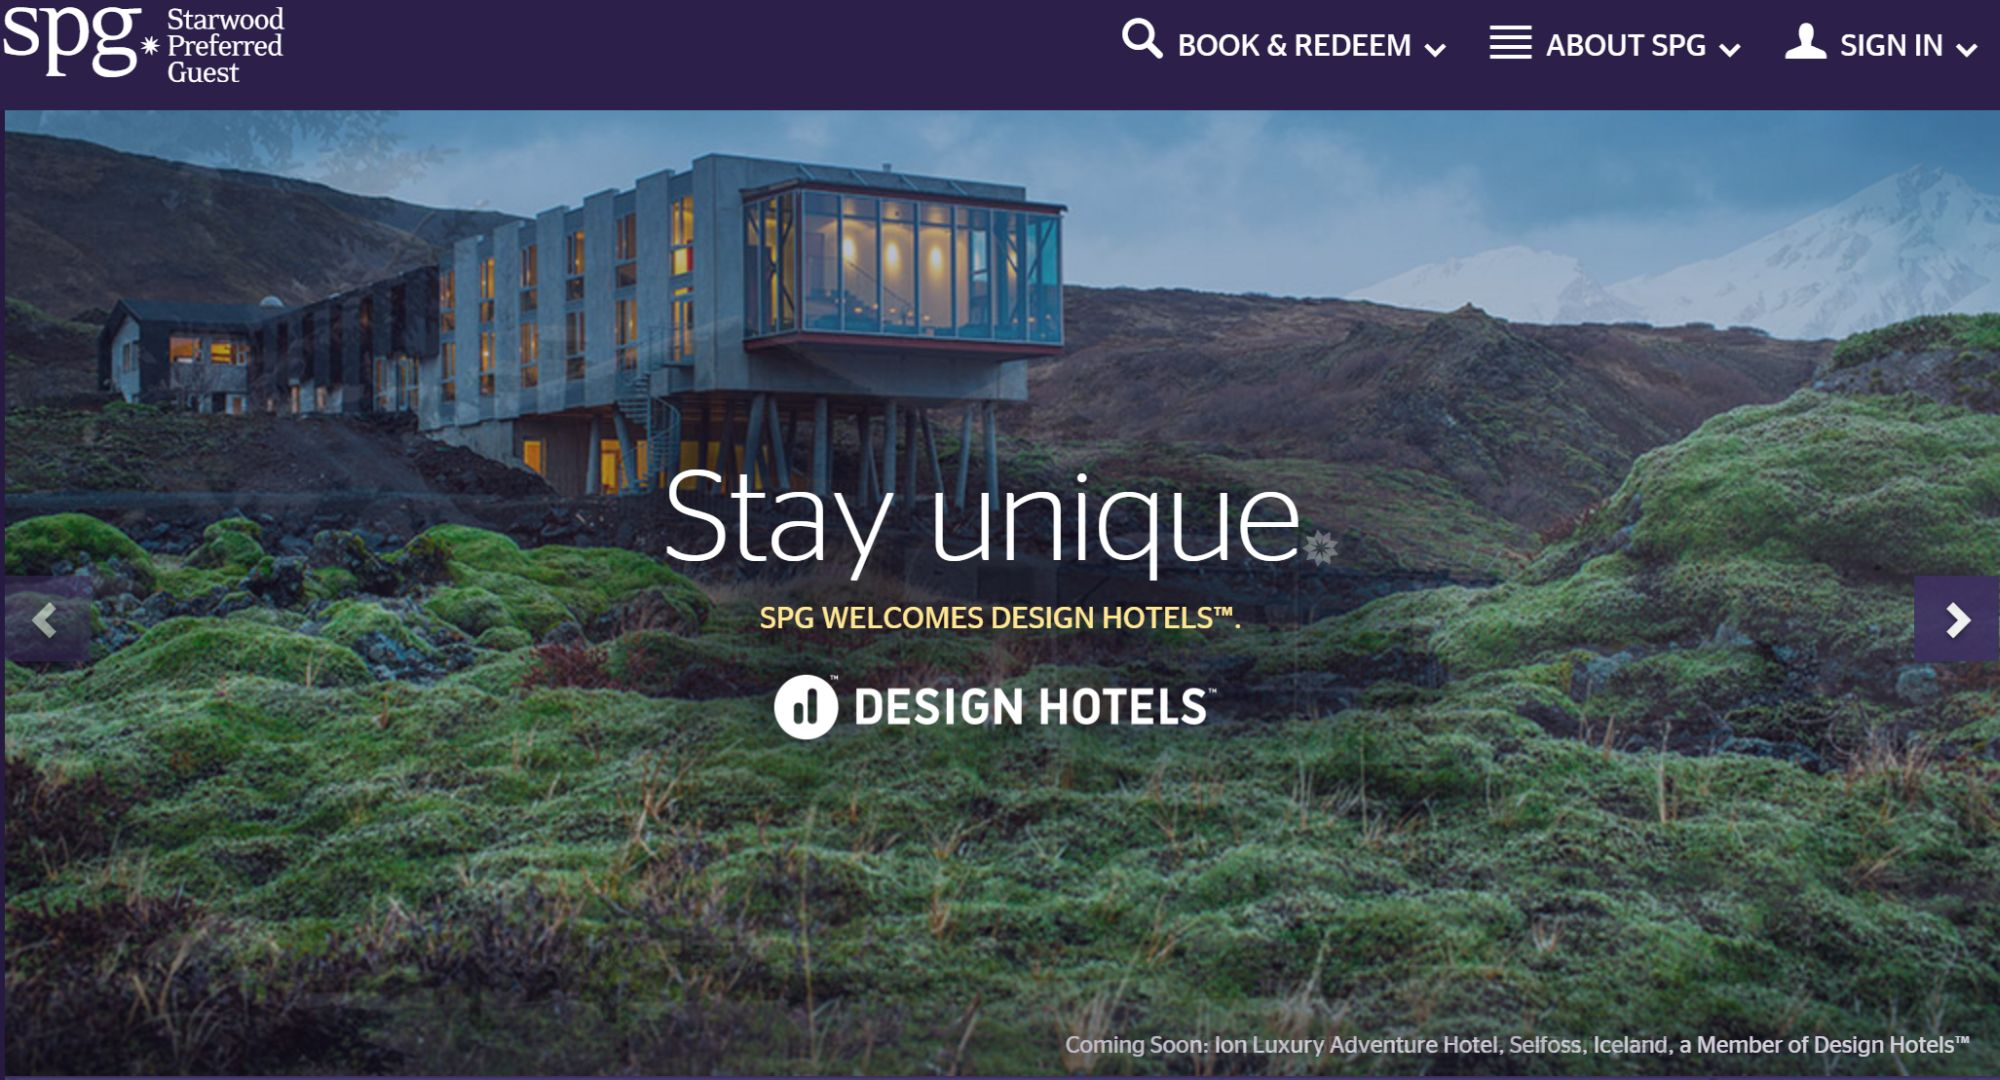 Win free spg starpoints with spg design hotels sweepstake for Design hotels 2015